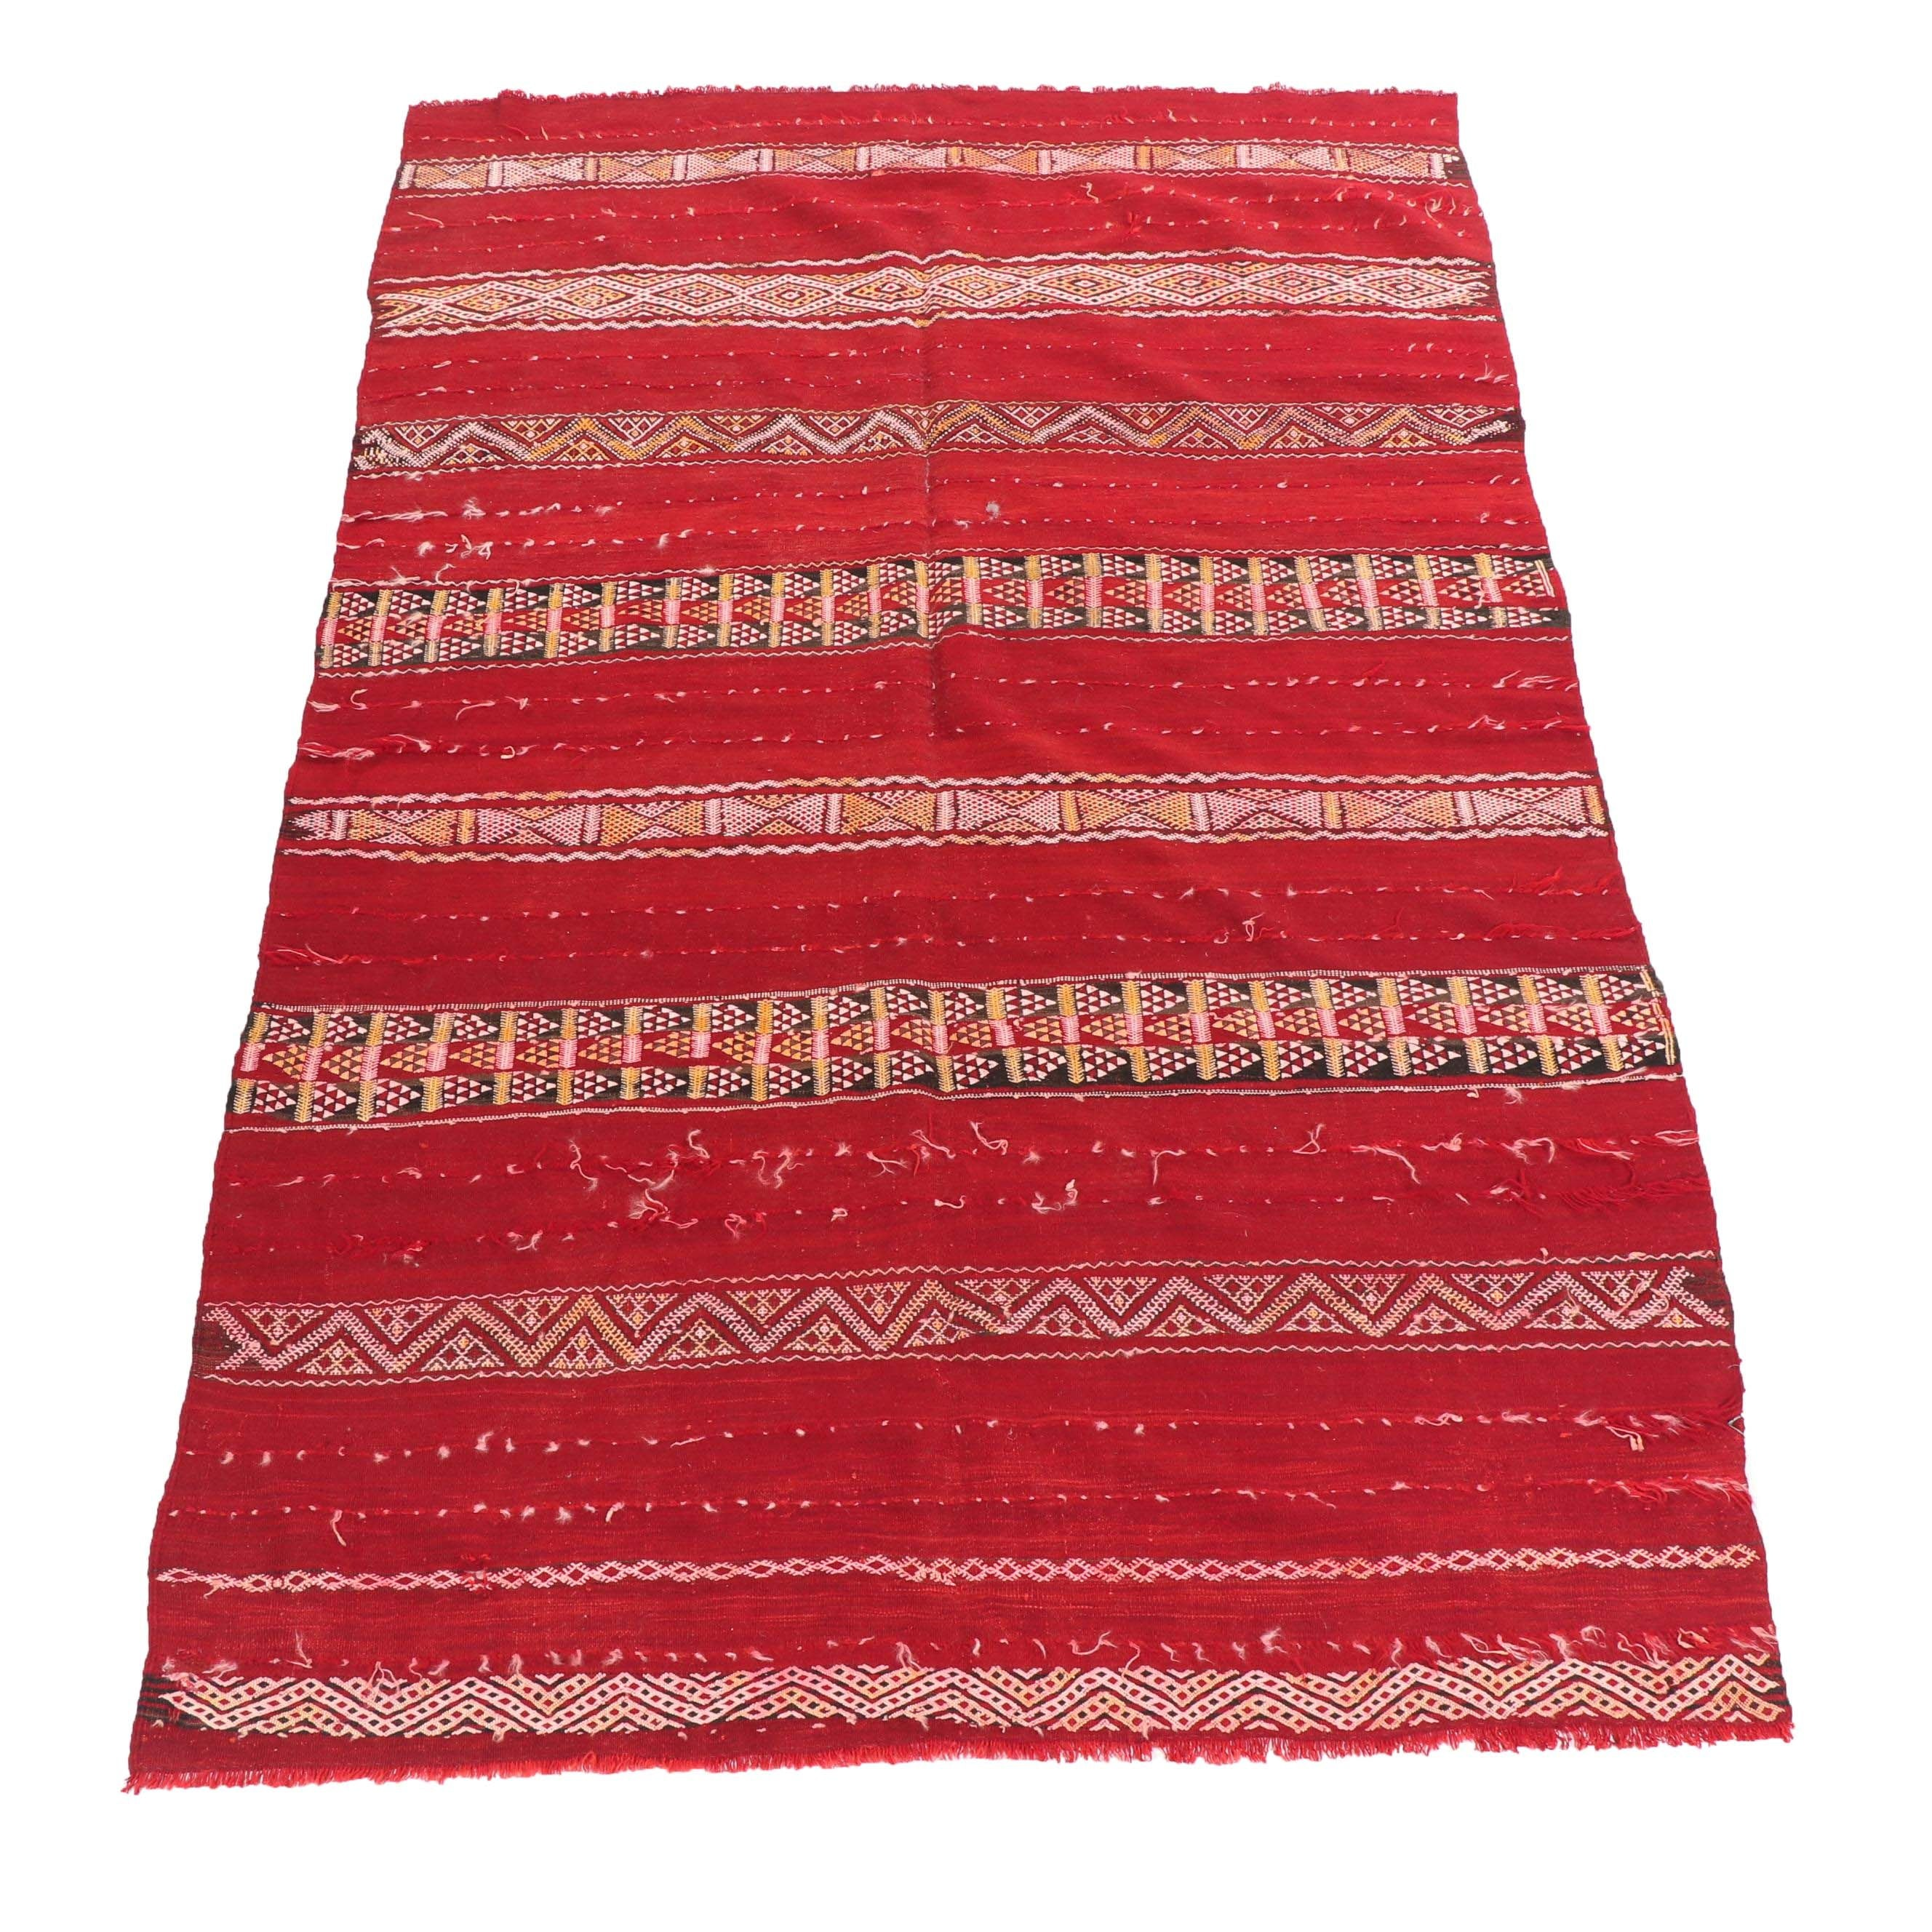 Handwoven and Embroidered Afghani Wool Kilim